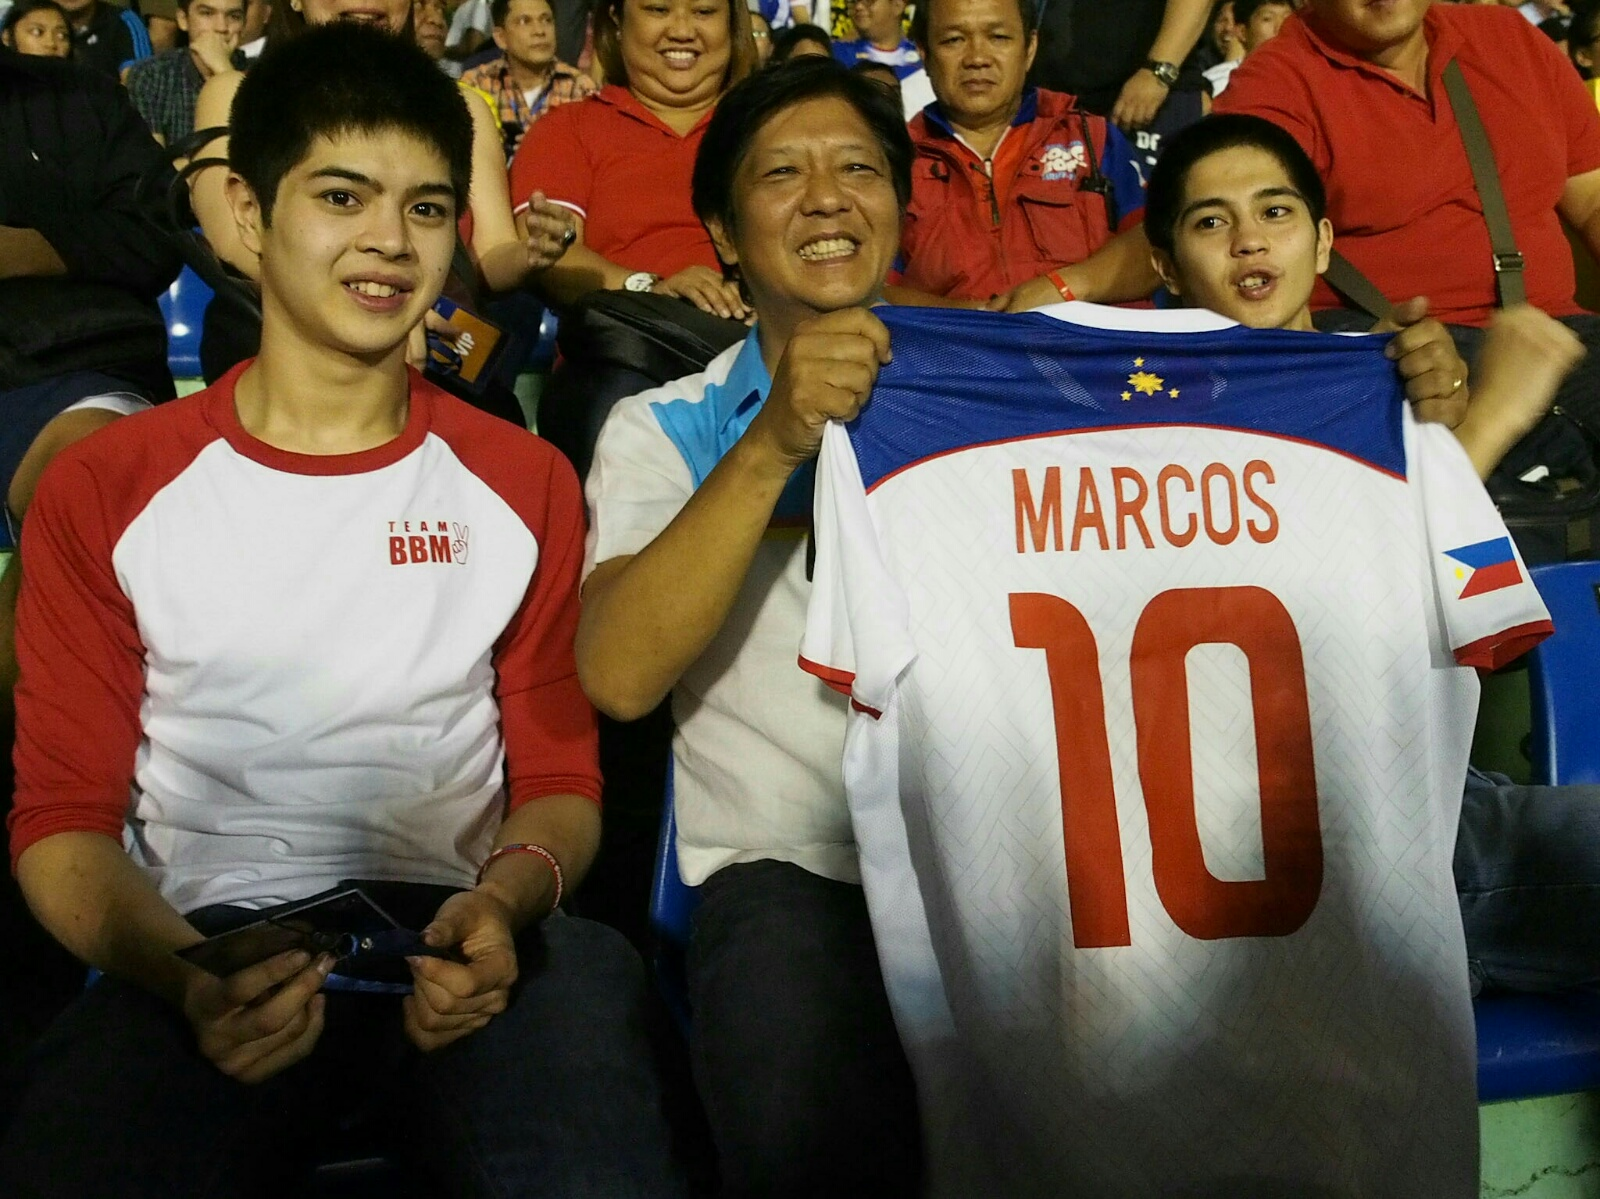 FAMILY TIME. Bongbong Marcos watches Tuesday evening's game with his two sons. Photo from the Office of Senator Bongbong Marcos